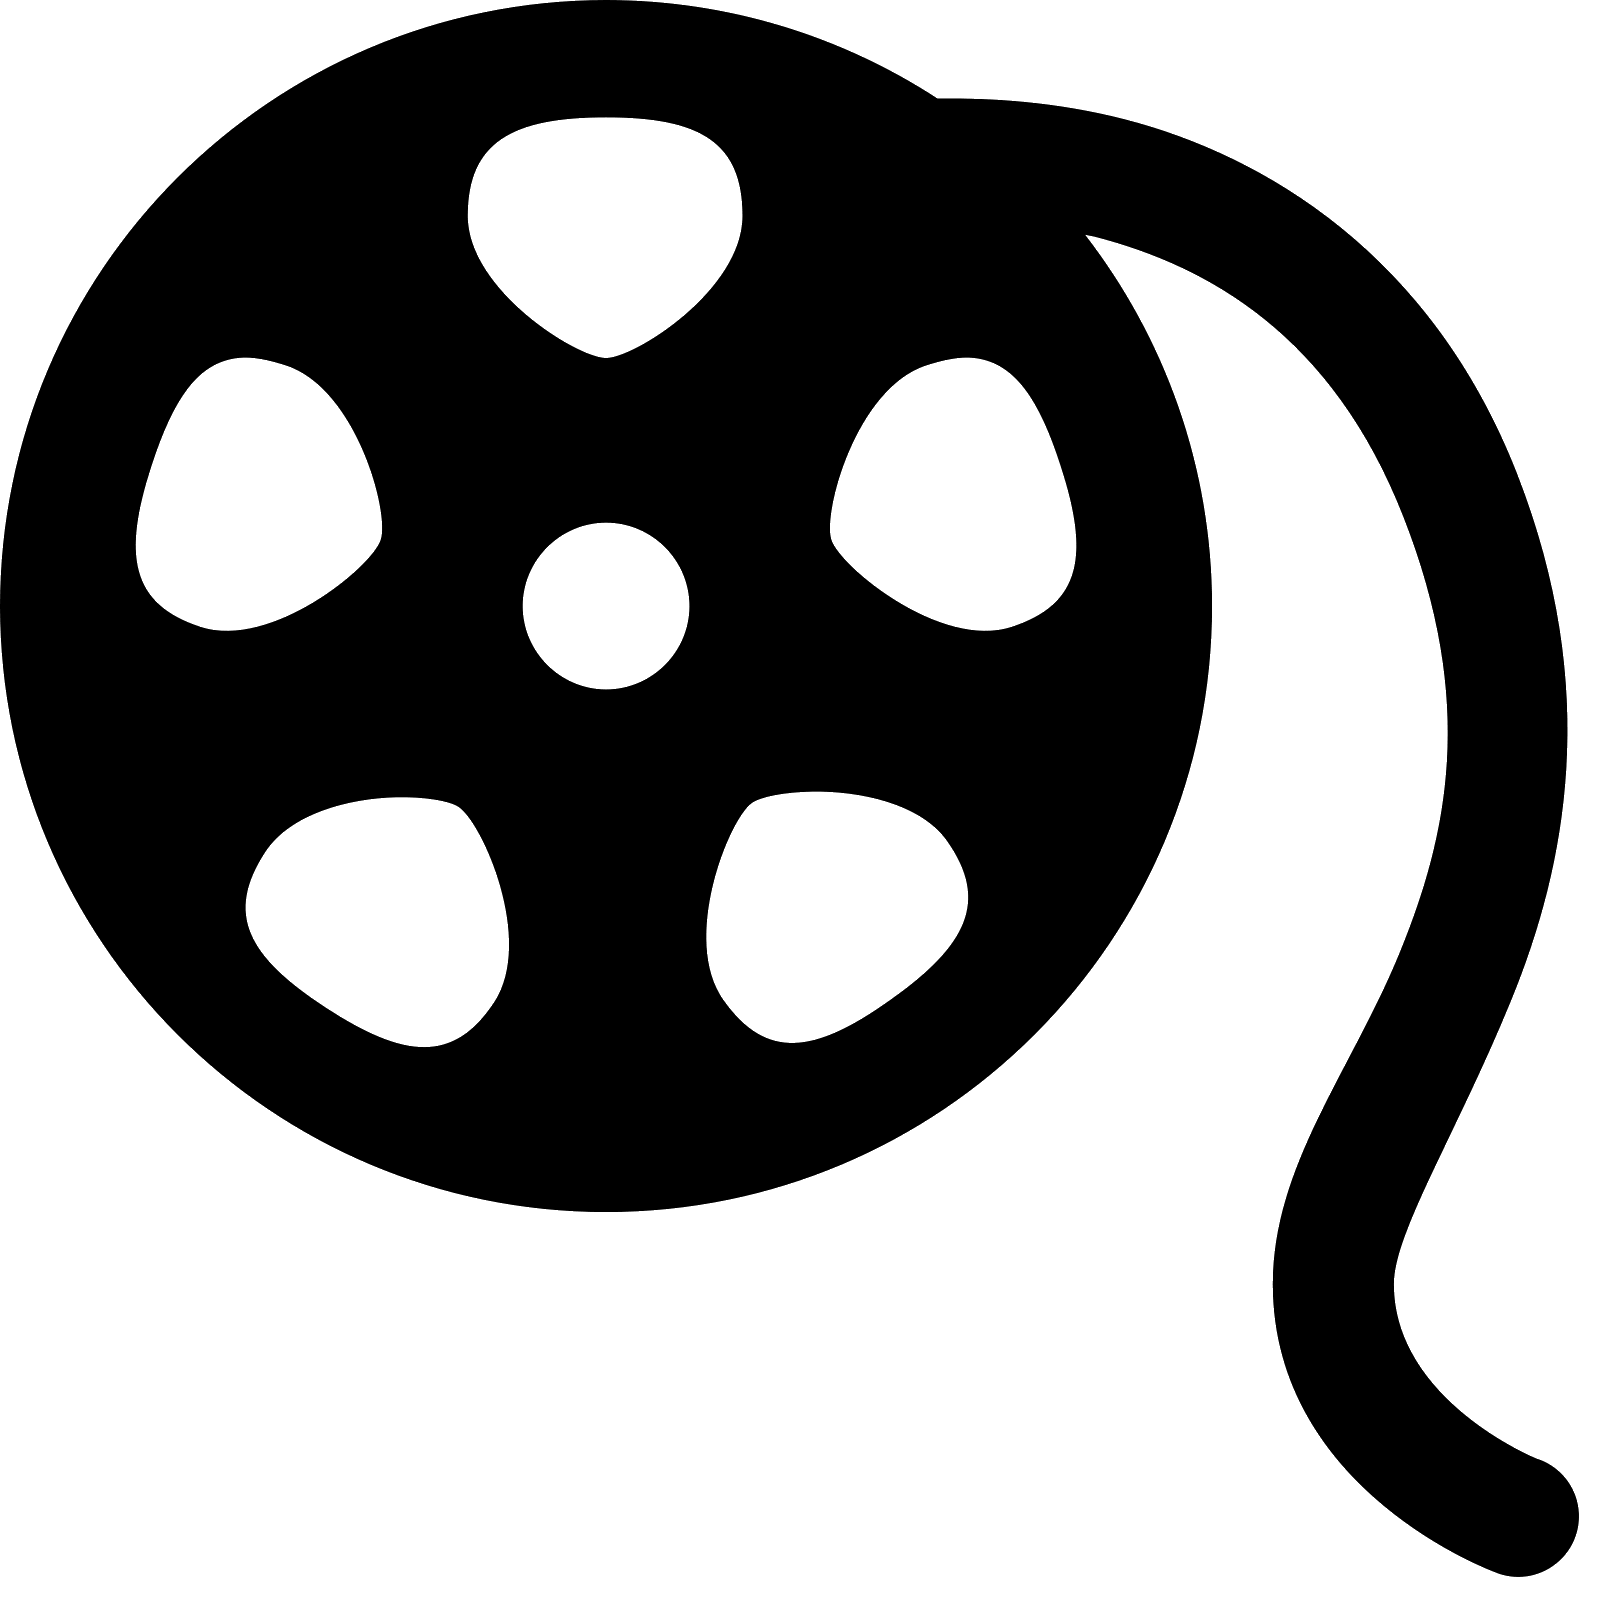 hight resolution of movie reel png film cones download gratuito